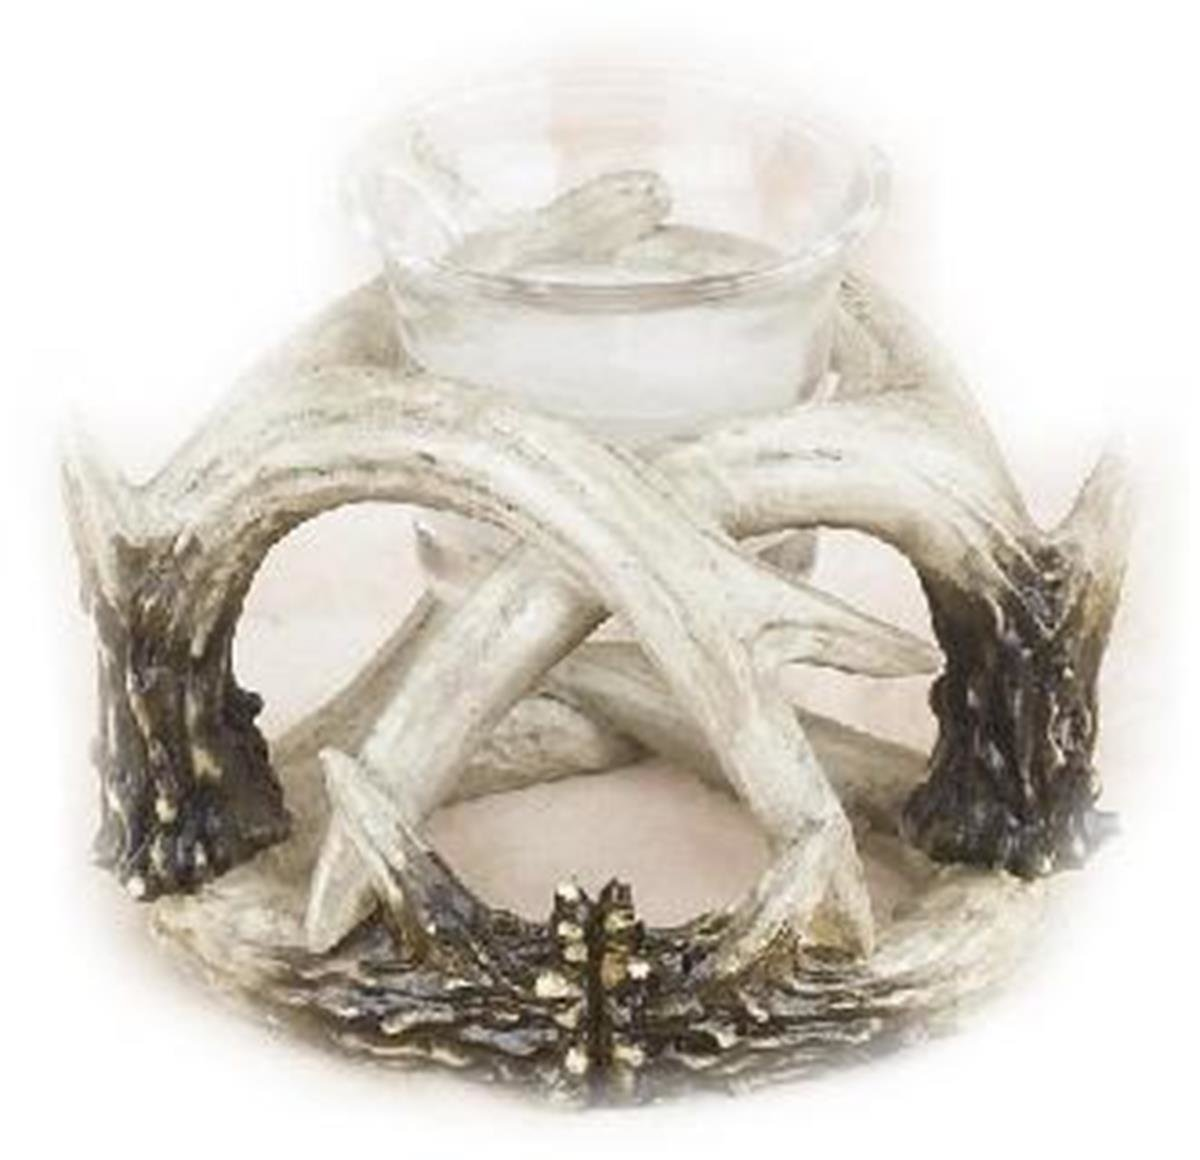 4 Inch Brown and White Deer Antler Design Single Candle Holder